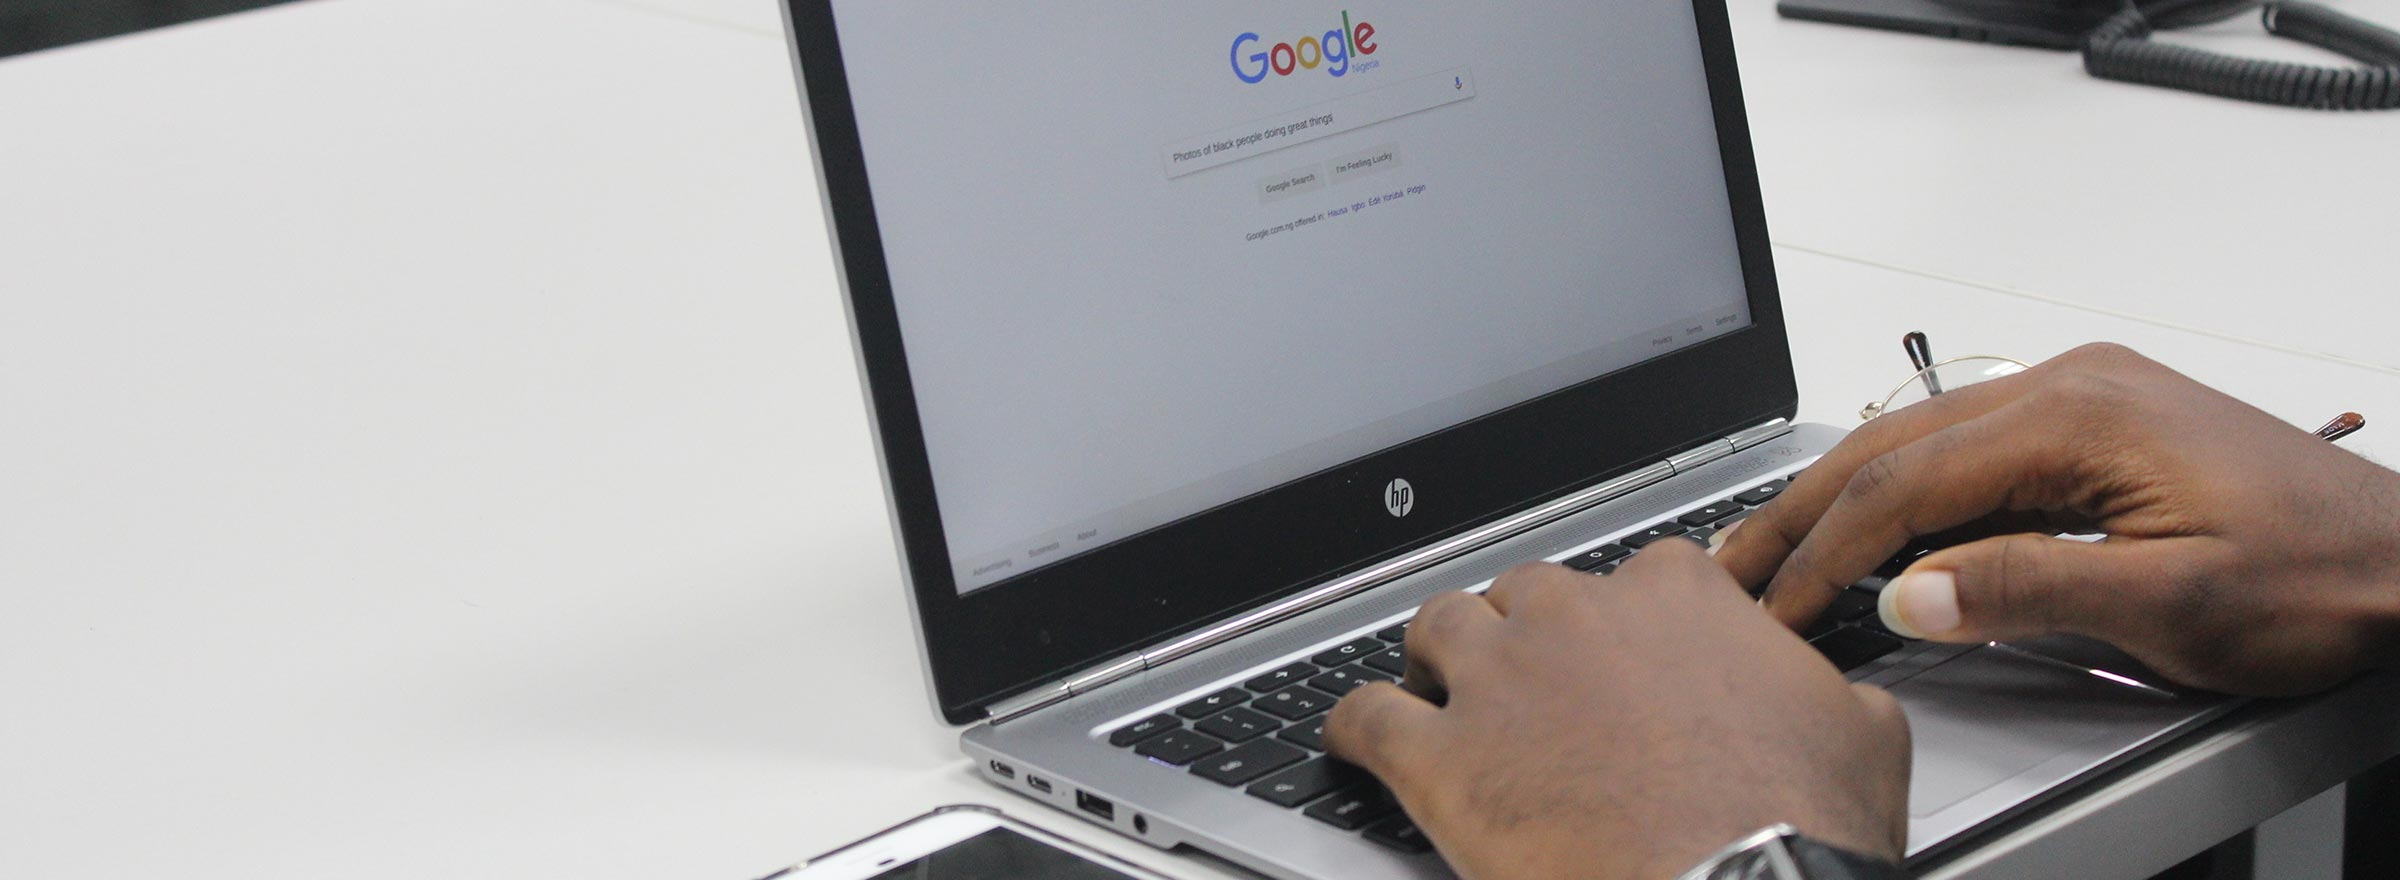 person typing on a laptop and searching via google, representing a nonprofit google adwords account